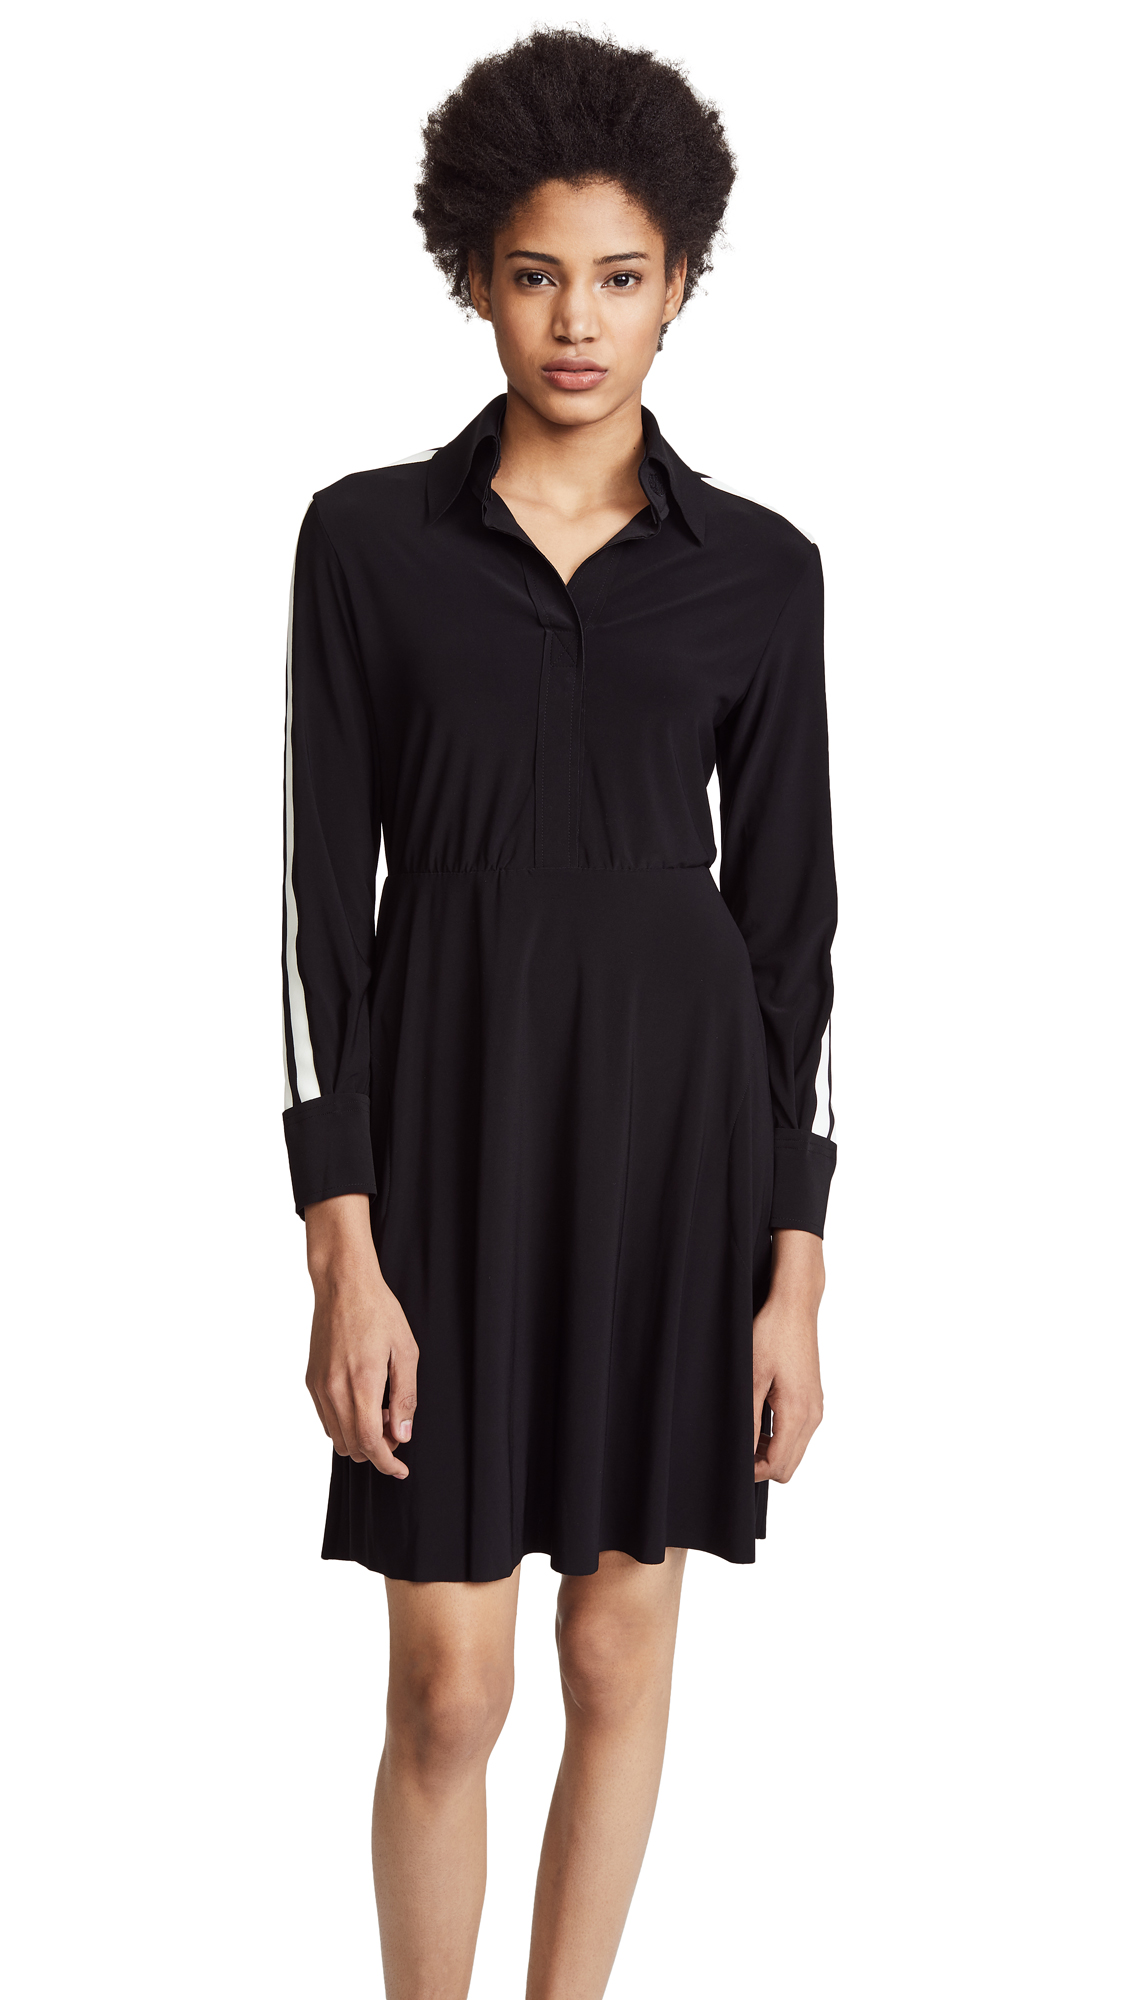 Norma Kamali Side Stripe Shirt Flared Dress - Black/Engineered Stripe